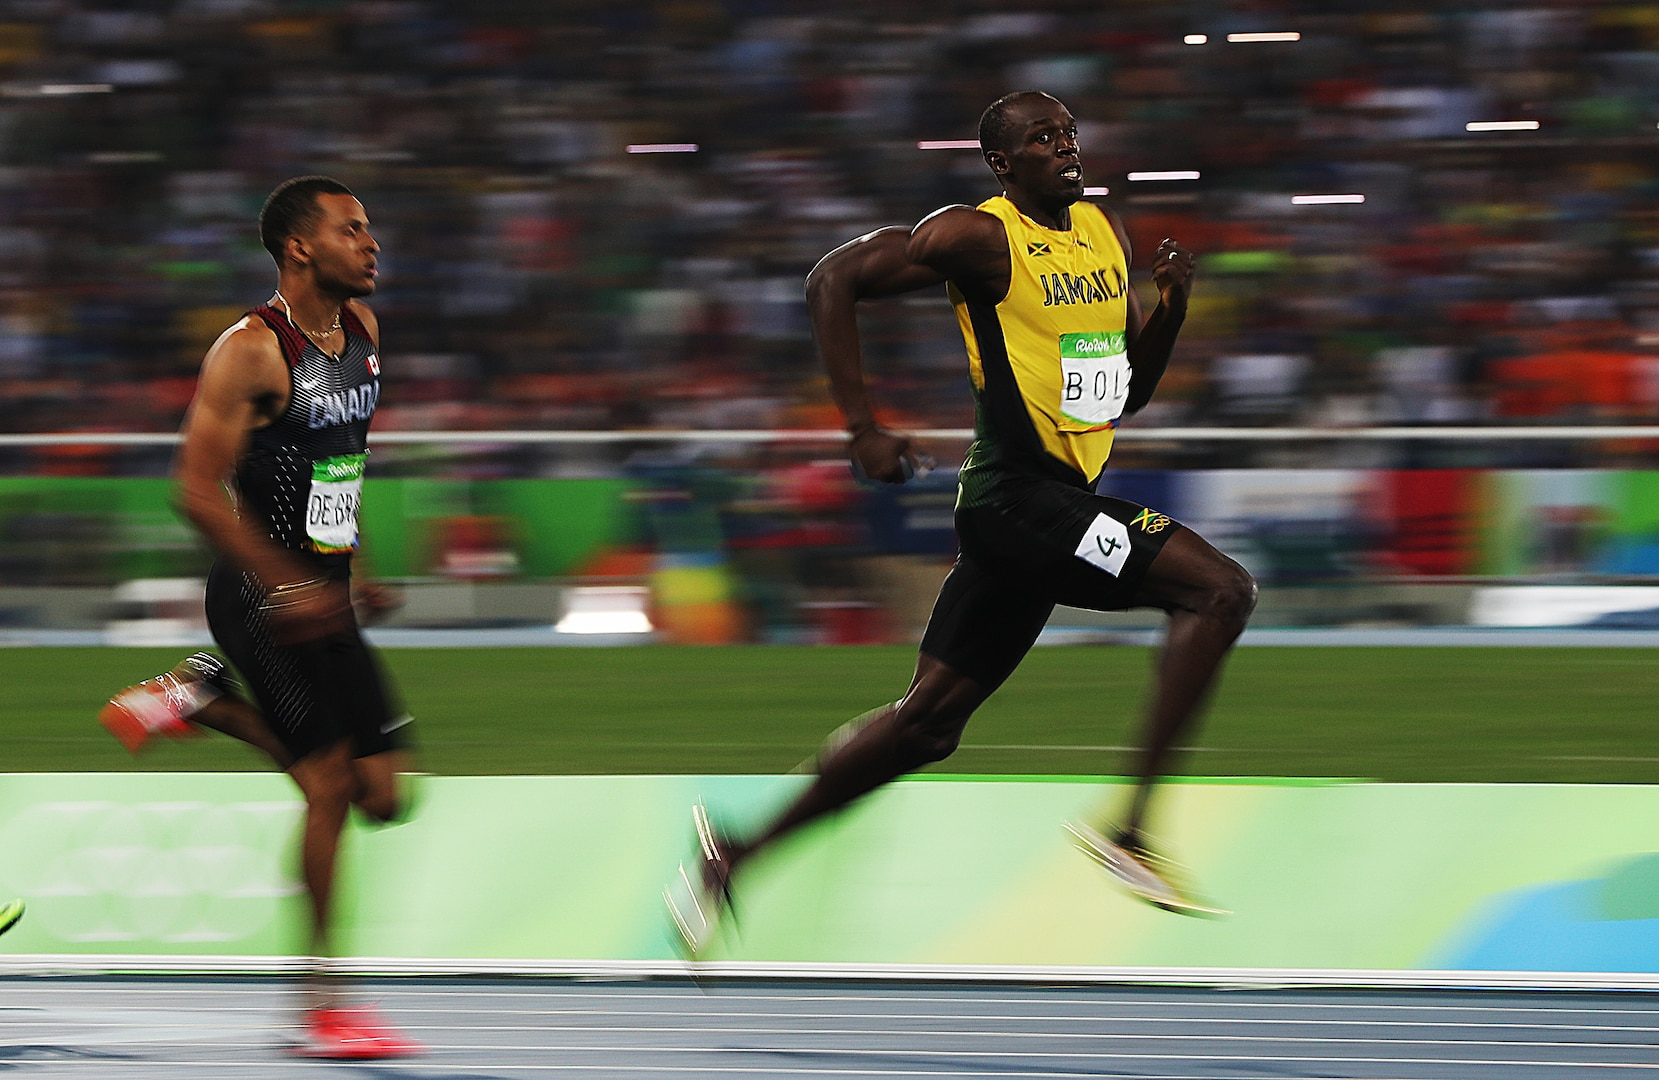 Andre de Grasse and Usain Bolt react as they compete in the Men's 200m Semifinals on Day 12 of the Rio 2016 Olympic Games